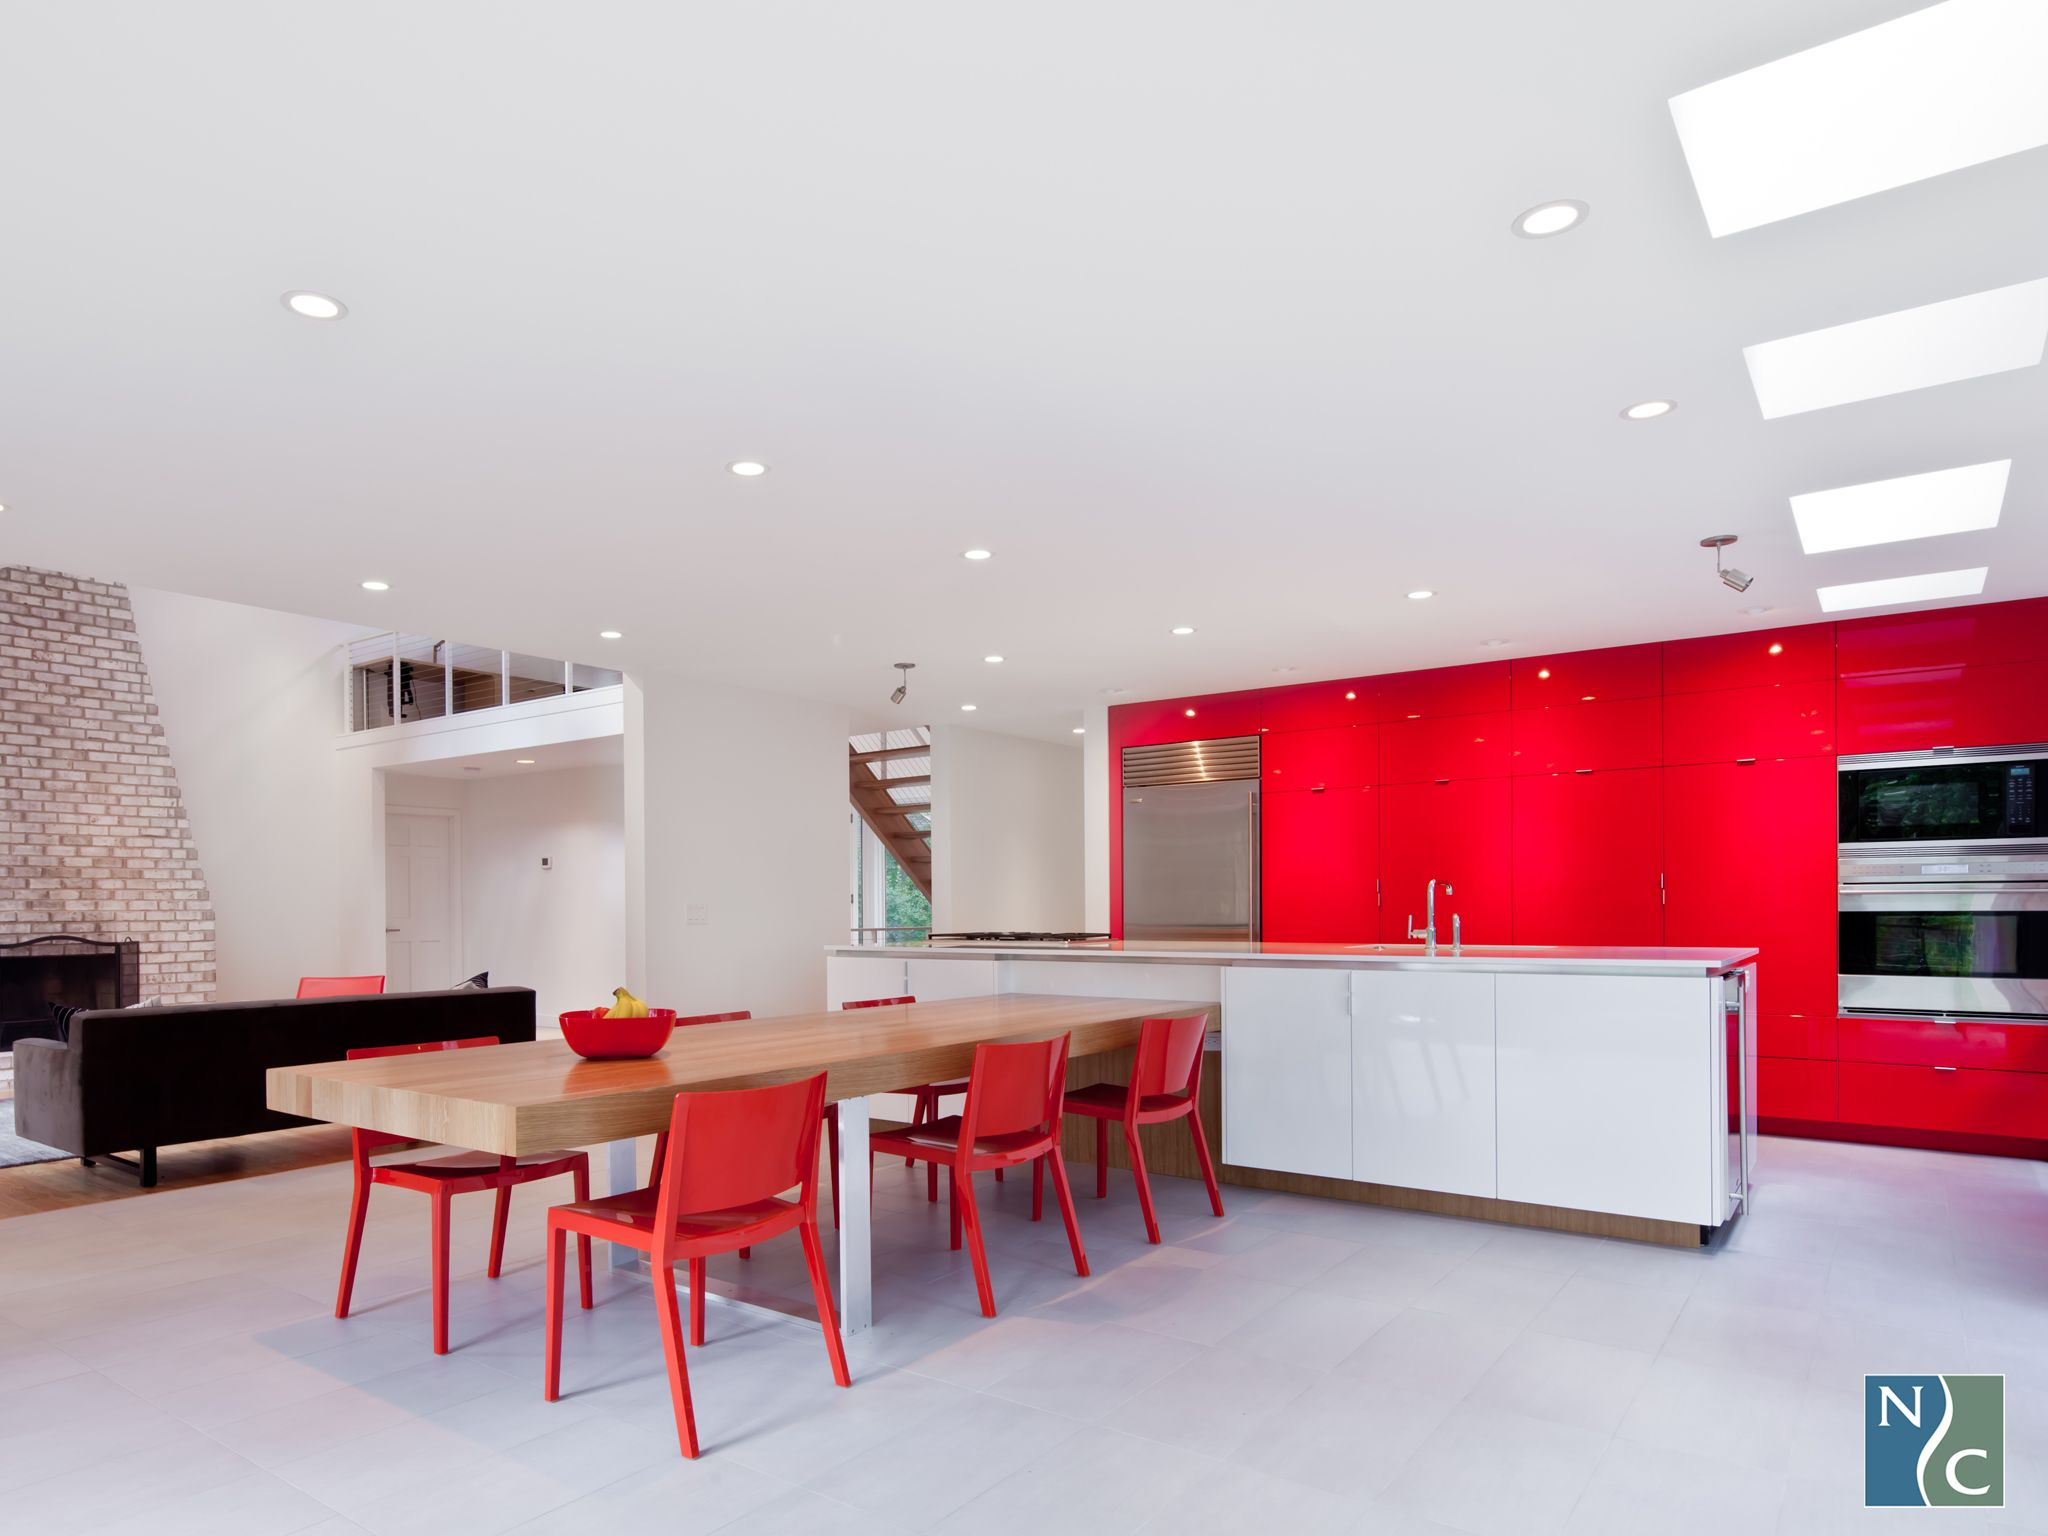 Red And White High Gloss 3d Laminate Really Make A Statement In This Modern Space Easy Kitchen Renovations Top Kitchen Designs Small Kitchen Tables